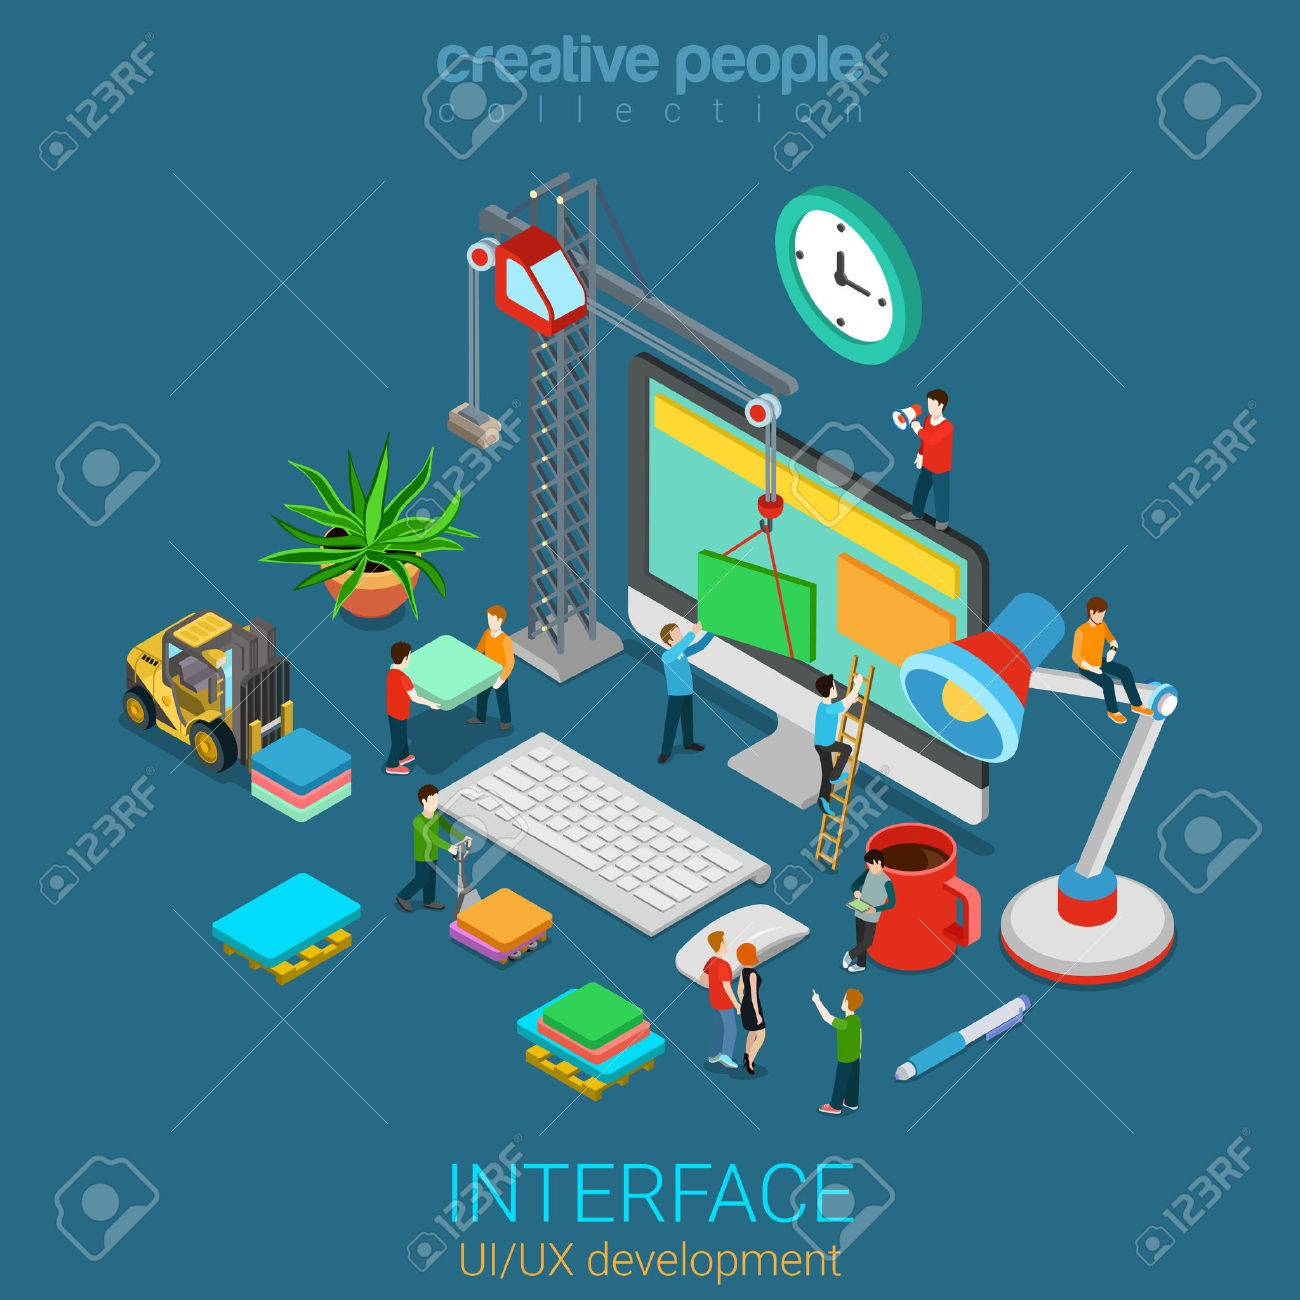 Flat 3d isometric mobile UI/UX GUI design web infographic concept vector. Crane people creating interface on computer. User interface experience usability mockup wireframe software development concept Stock Vector - 56931667